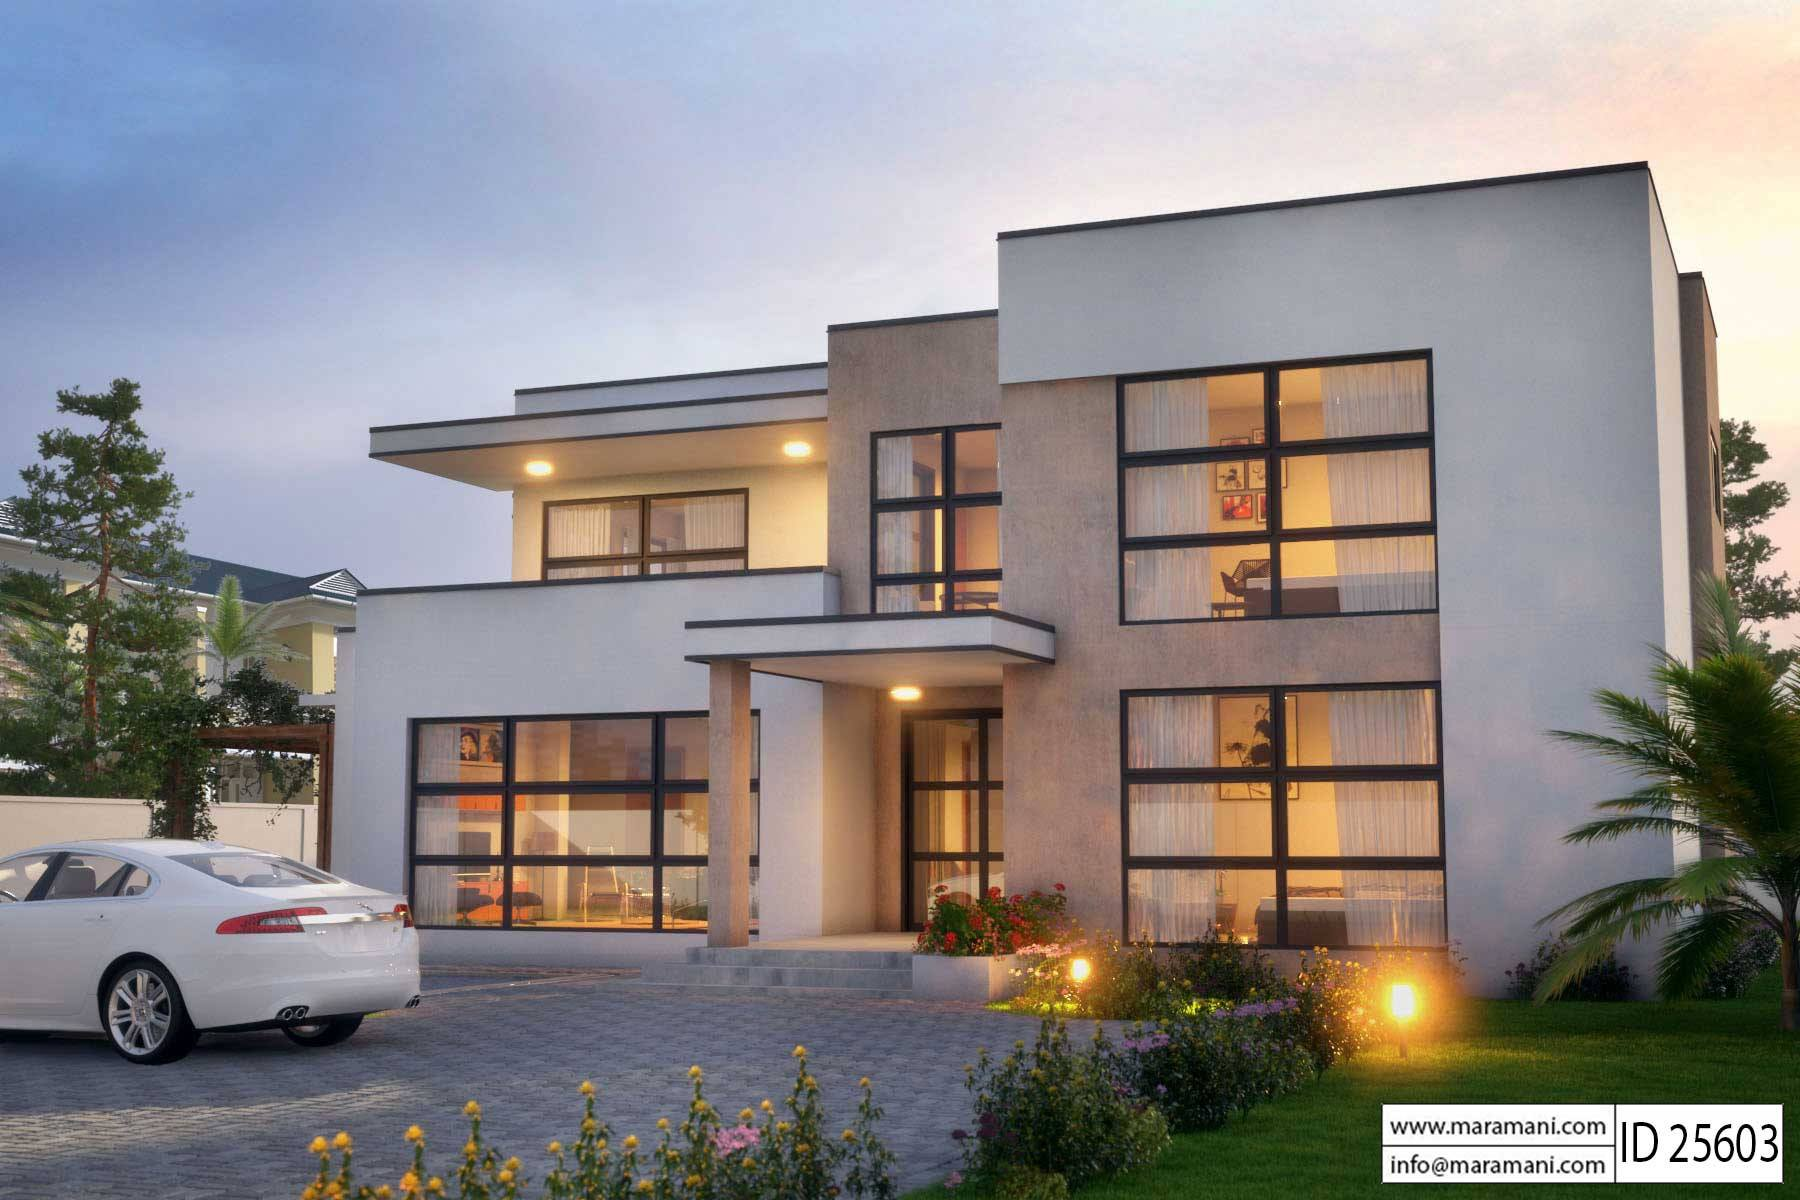 5 bedroom modern house modern 5 bedroom house design id 25603 floor plans by 13976